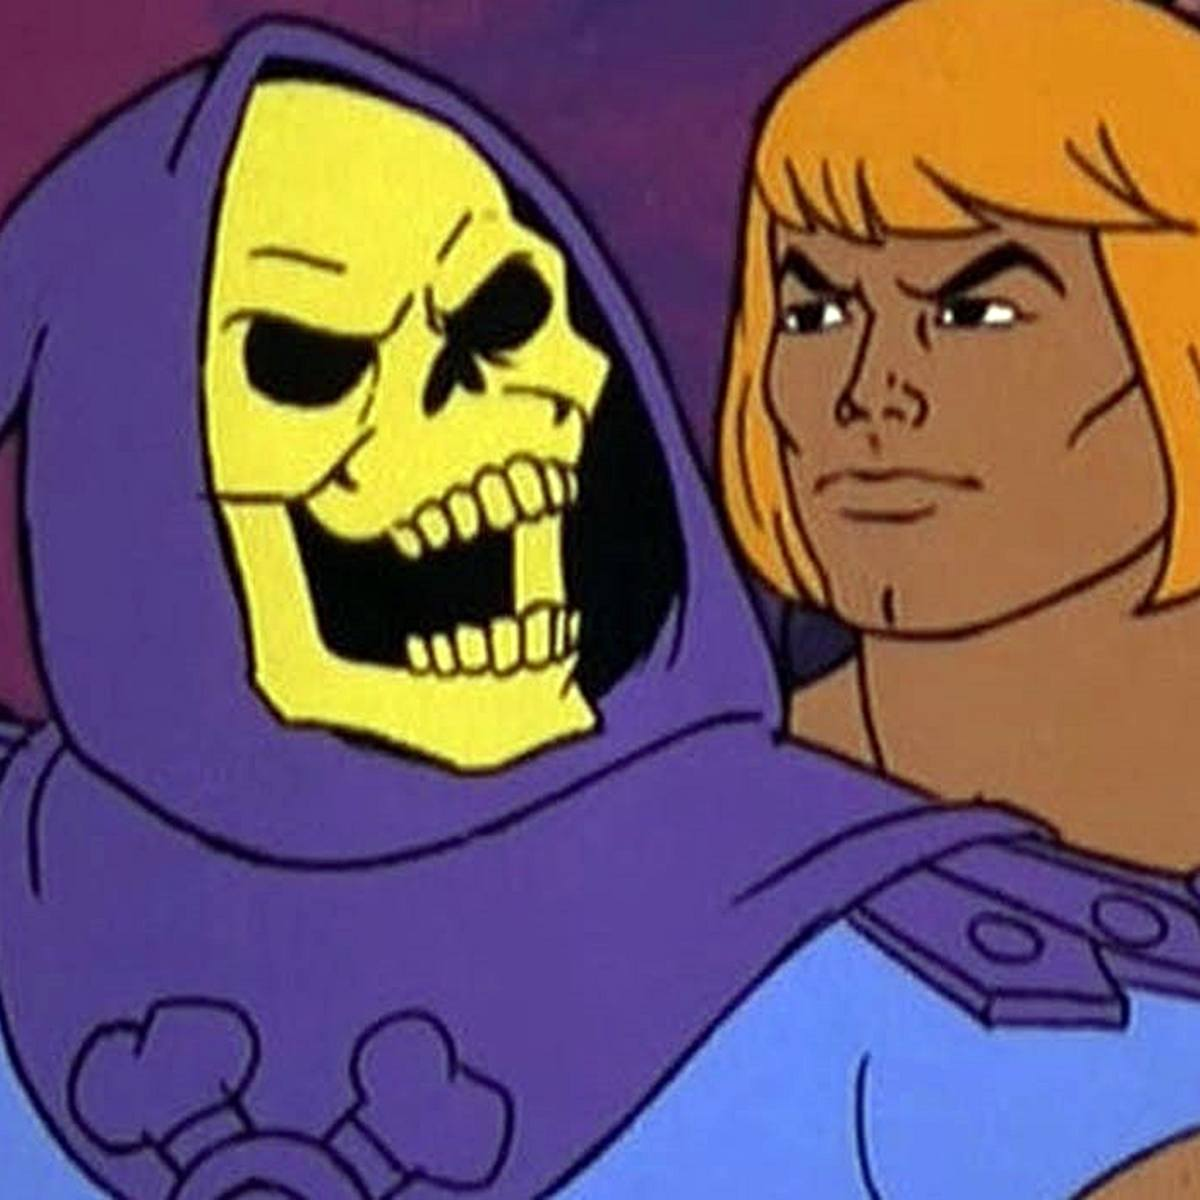 HE MAN2 15 Facts About 80s Cartoons That Will Ruin Your Childhood